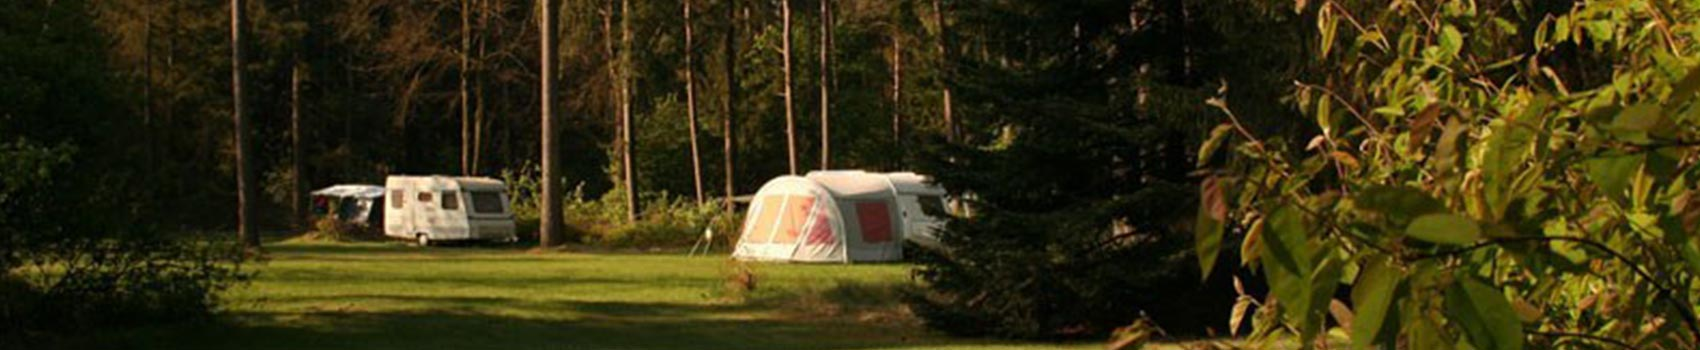 Camping_in_Drenthe_1